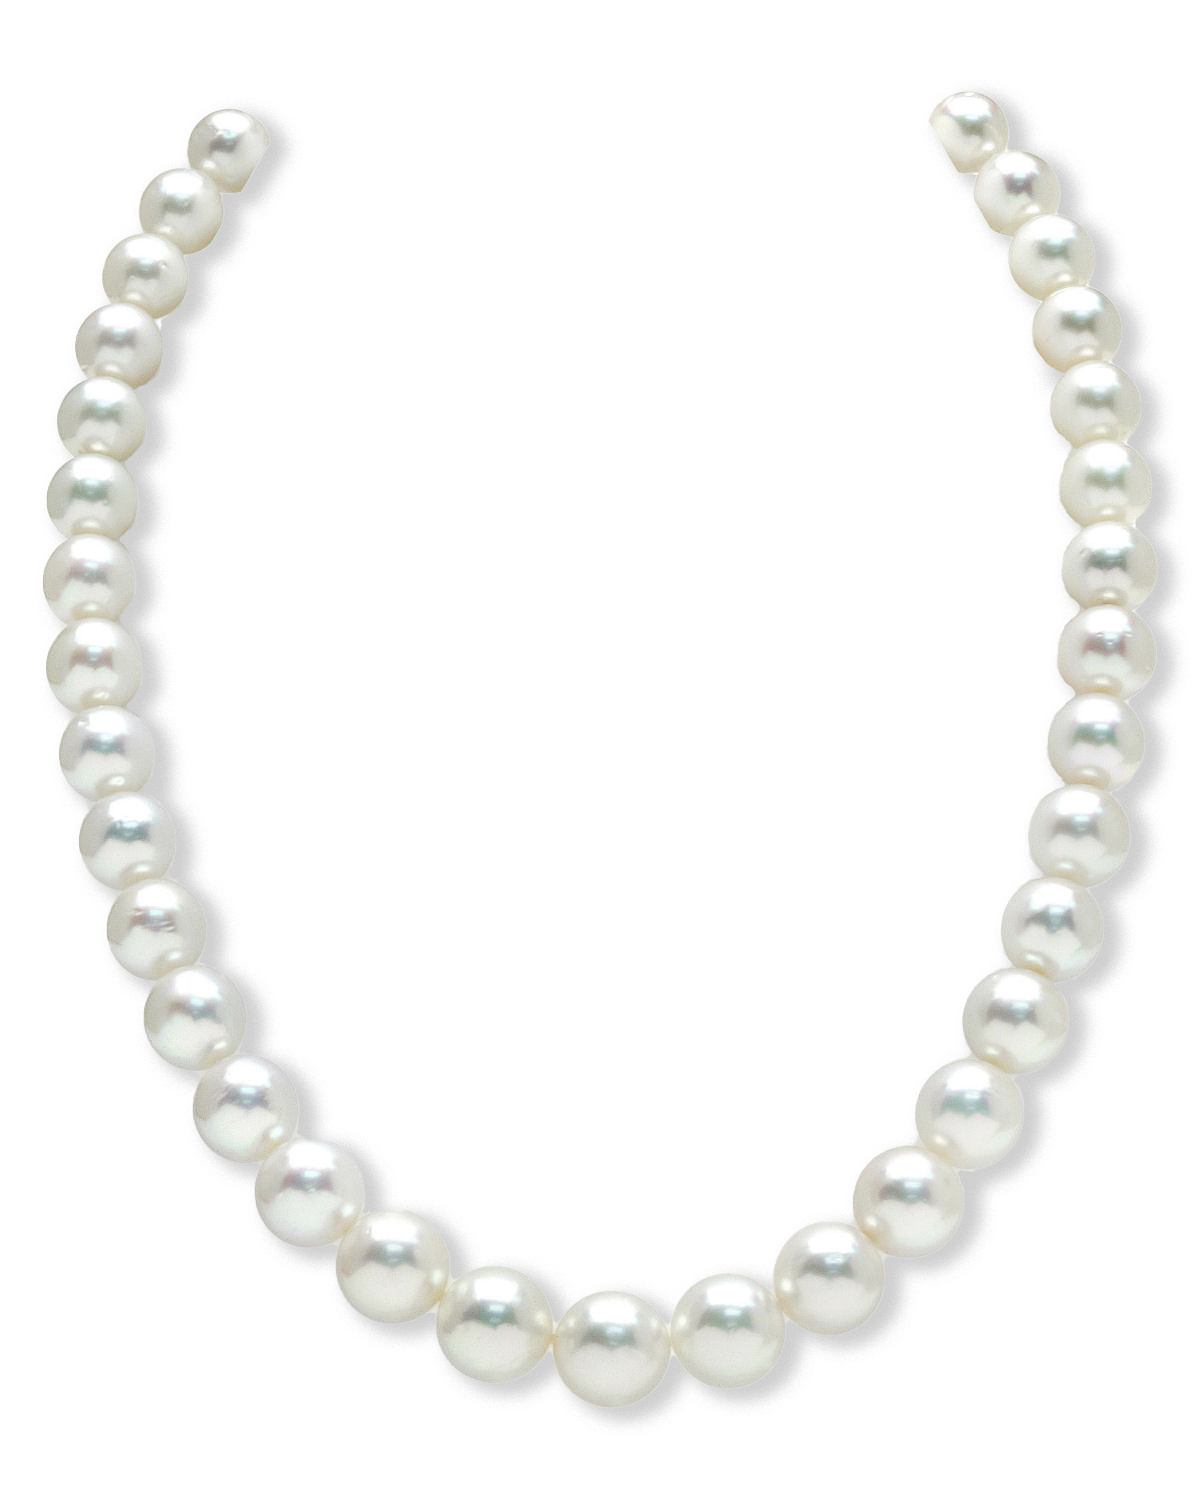 9-11mm White South Sea Pearl Necklace